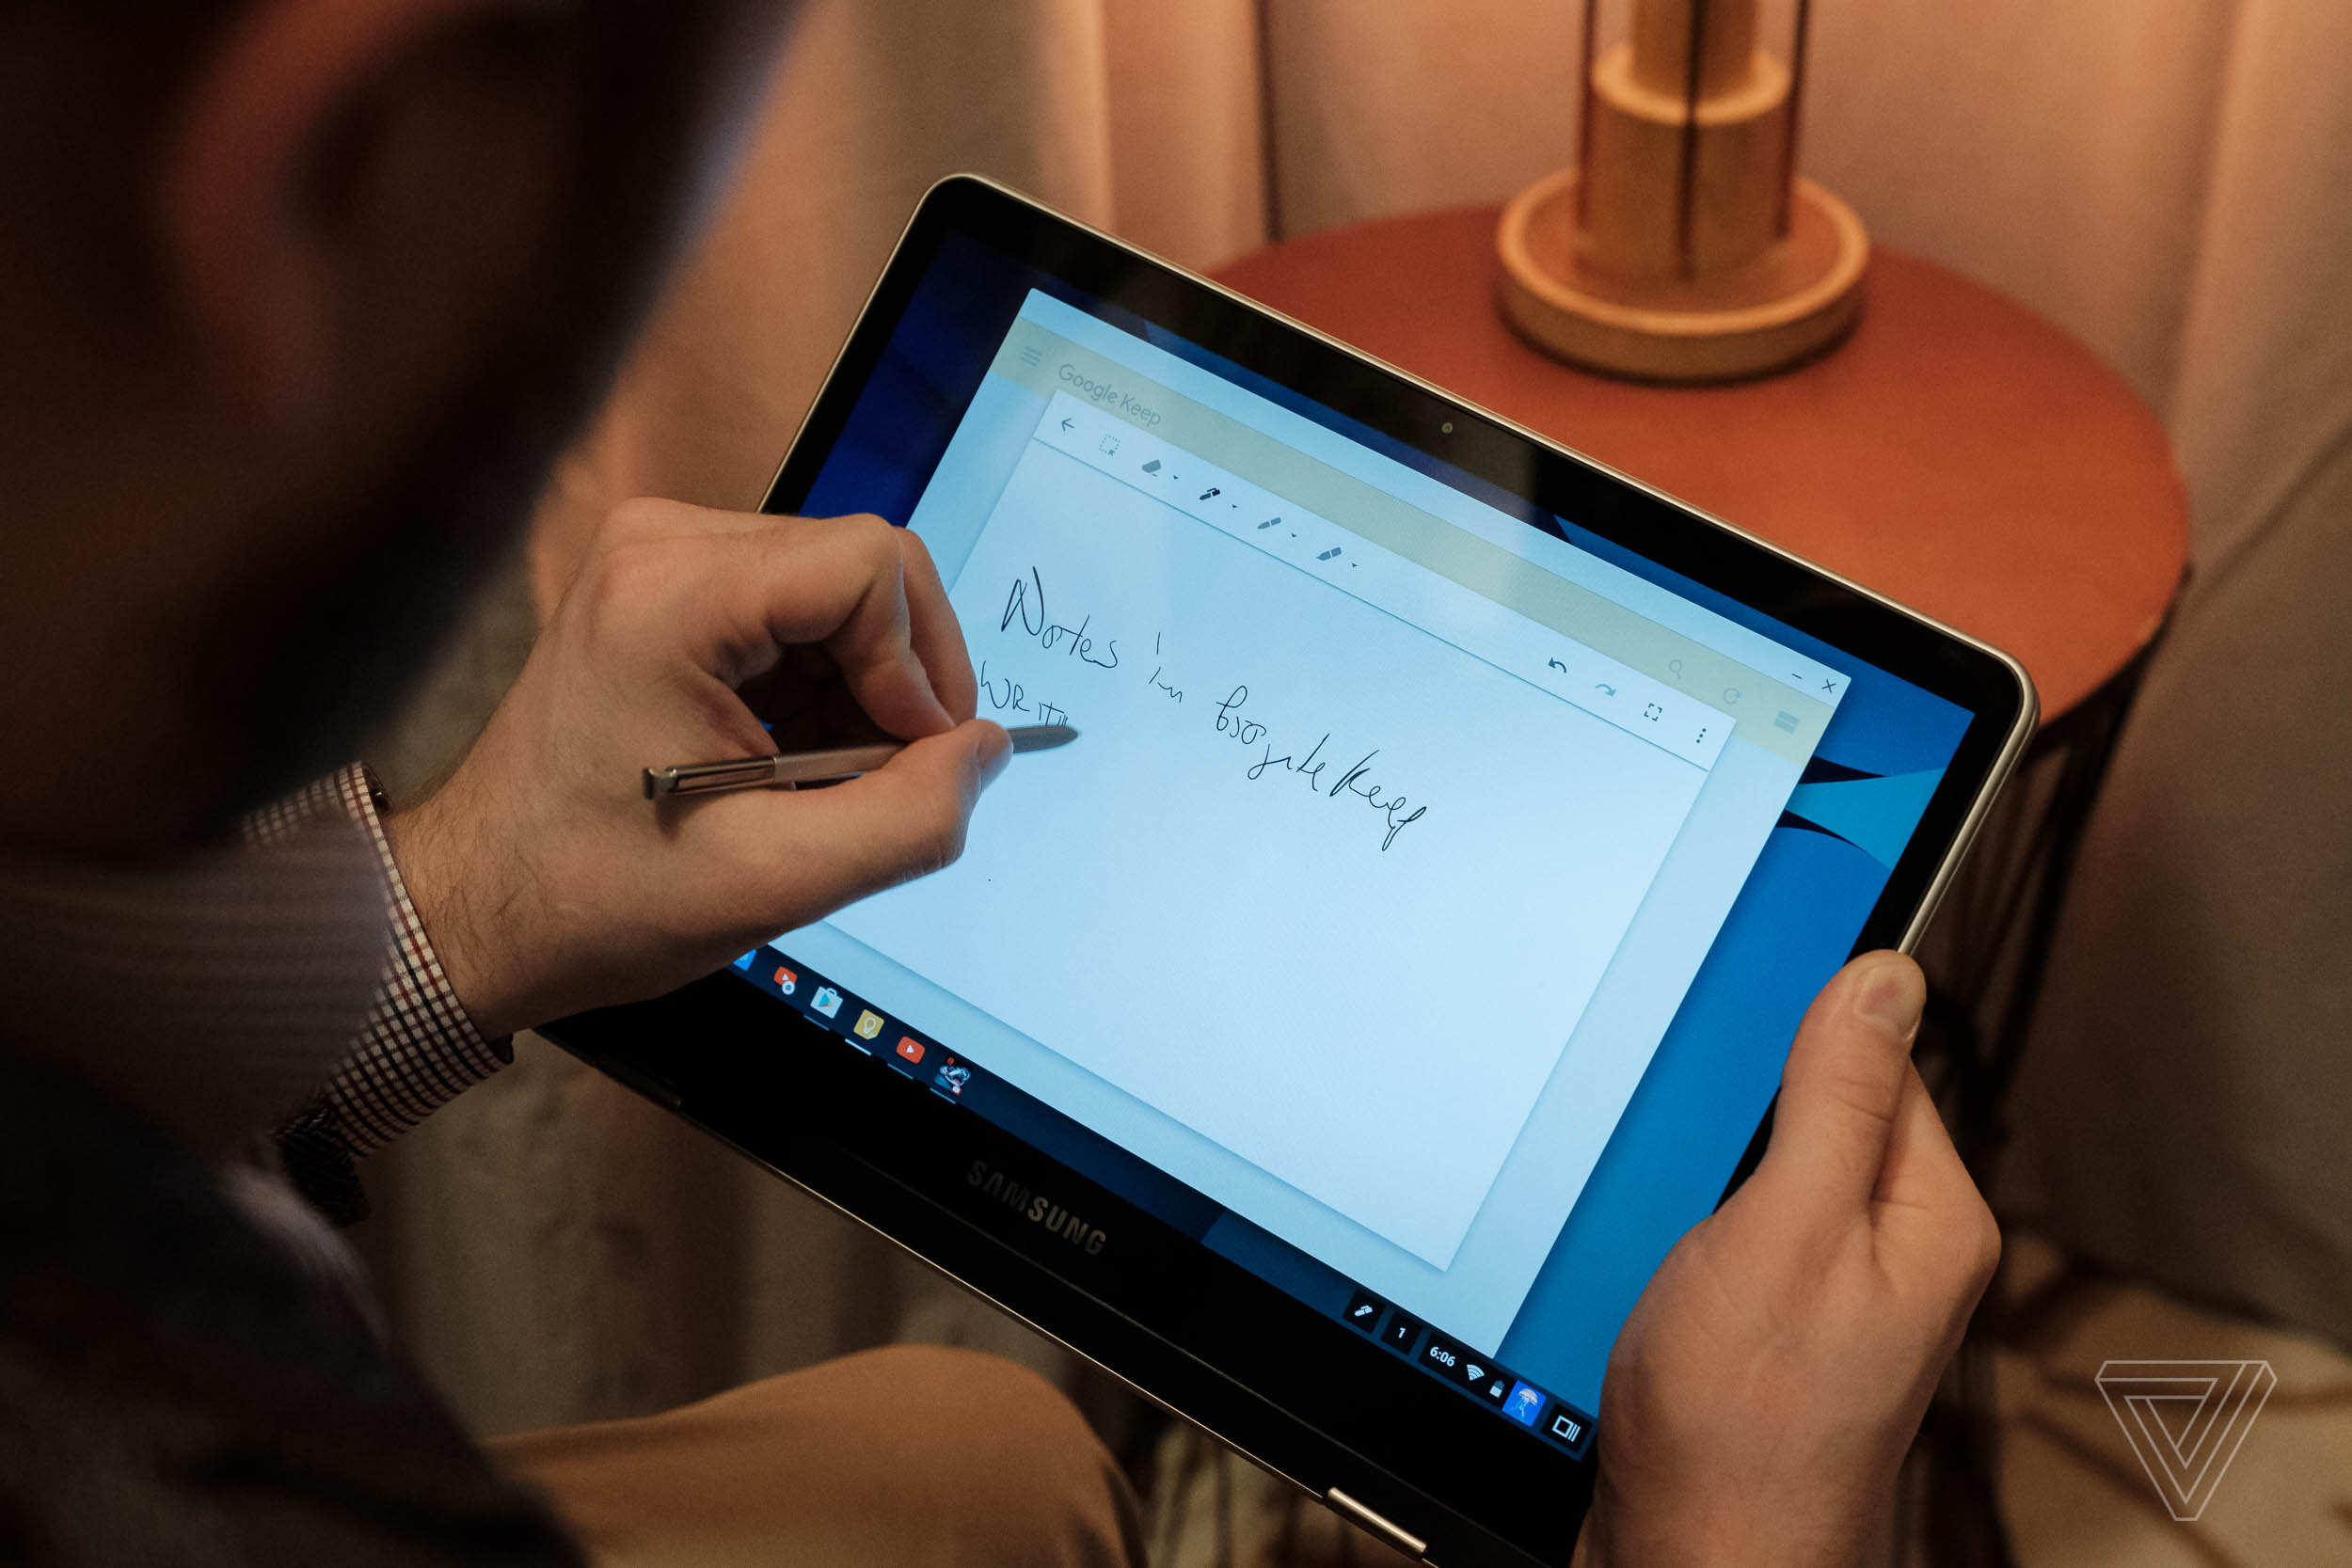 Samsung's new Chromebooks are Google's answer to the iPad